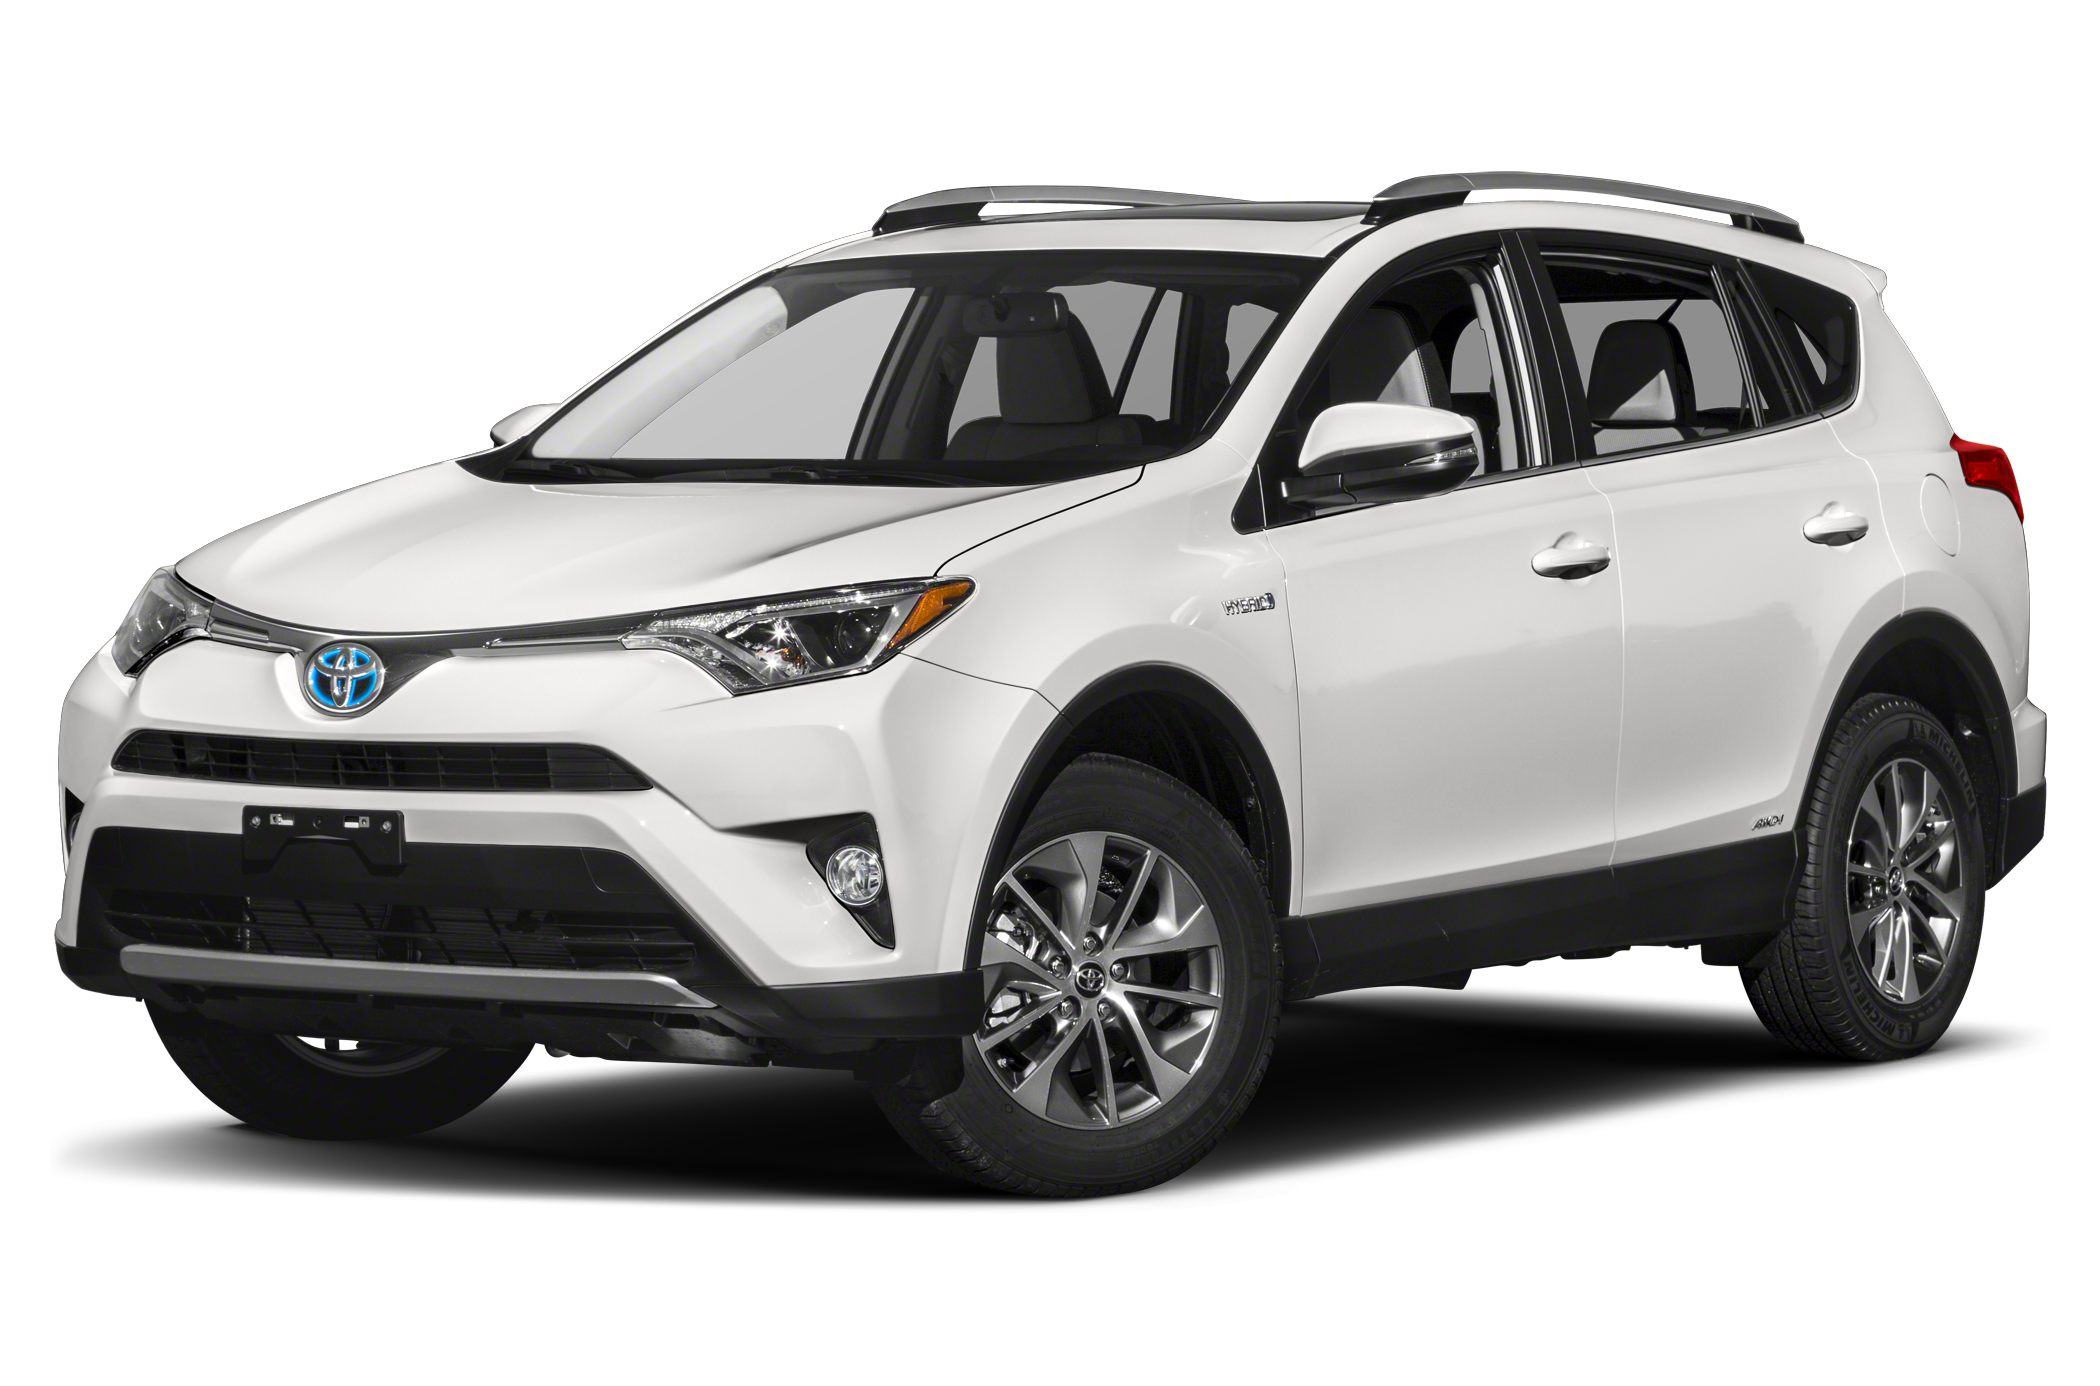 Mercedes Benz Lease >> 2018 Toyota RAV4 Hybrid Deals, Prices, Incentives & Leases, Overview - CarsDirect